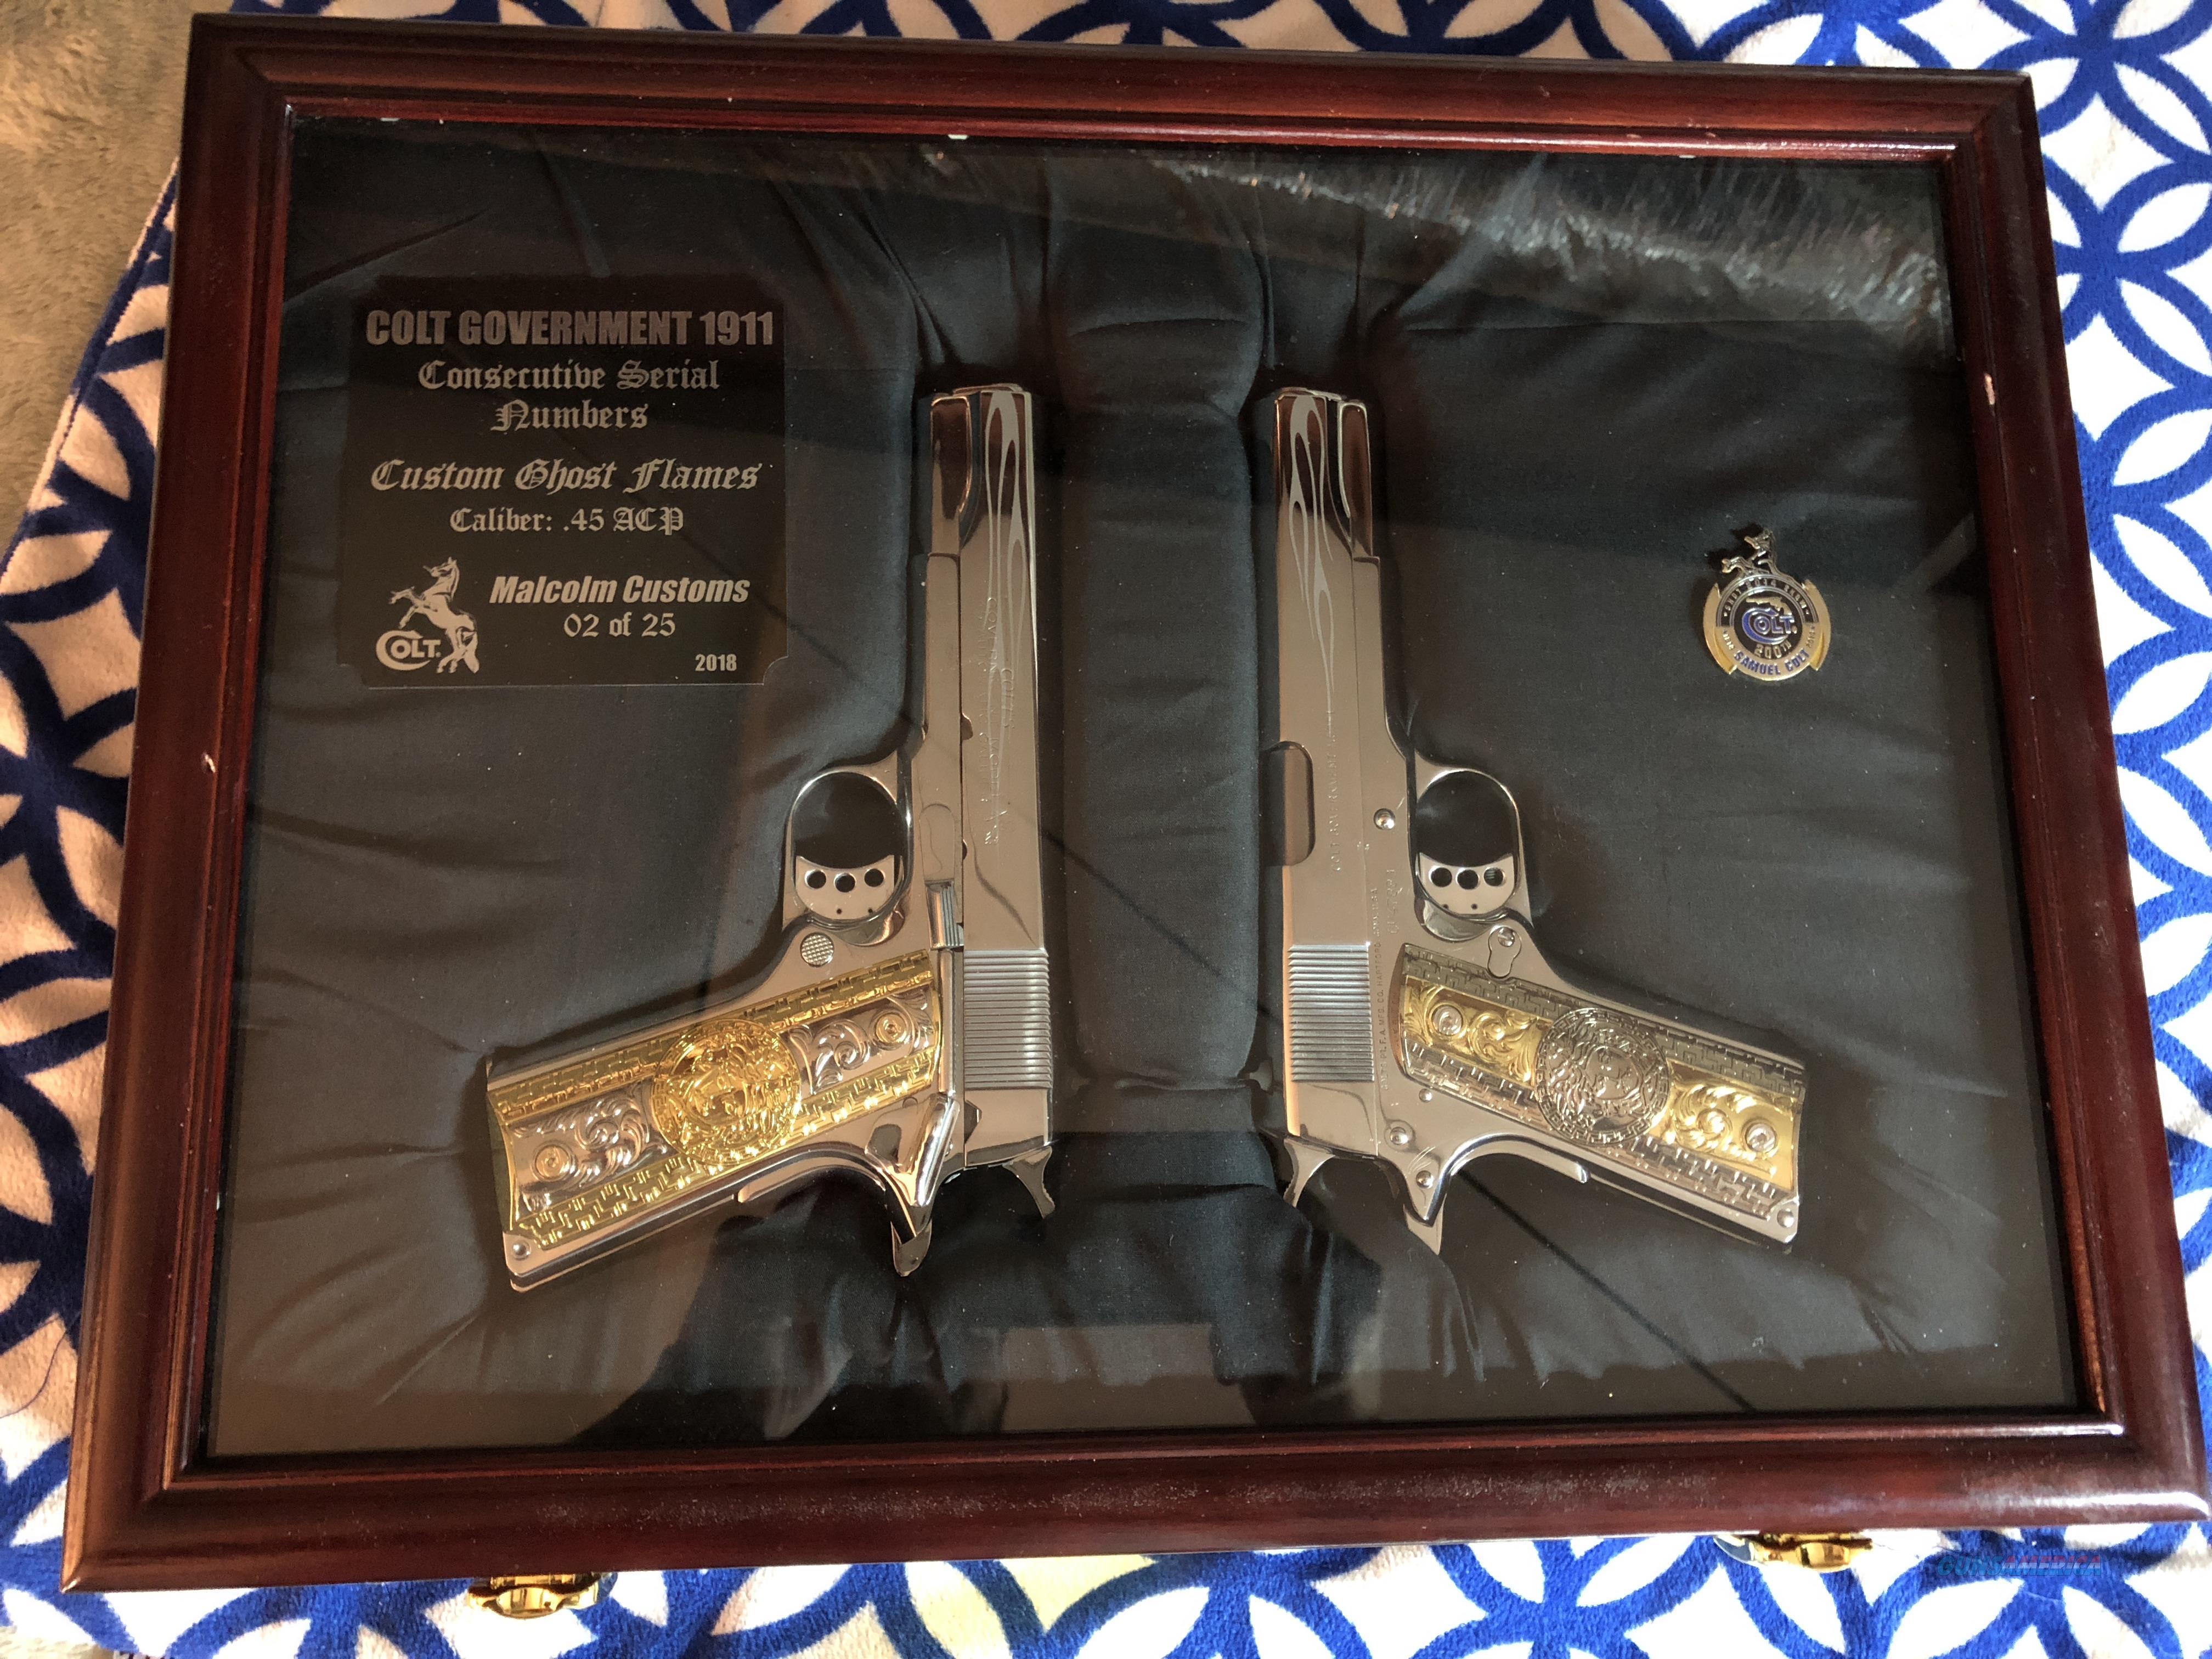 Custom Colt 1911 Set Consecutive Serial Number Ghost Flames Display Case Boxes  Guns > Pistols > Colt Automatic Pistols (1911 & Var)